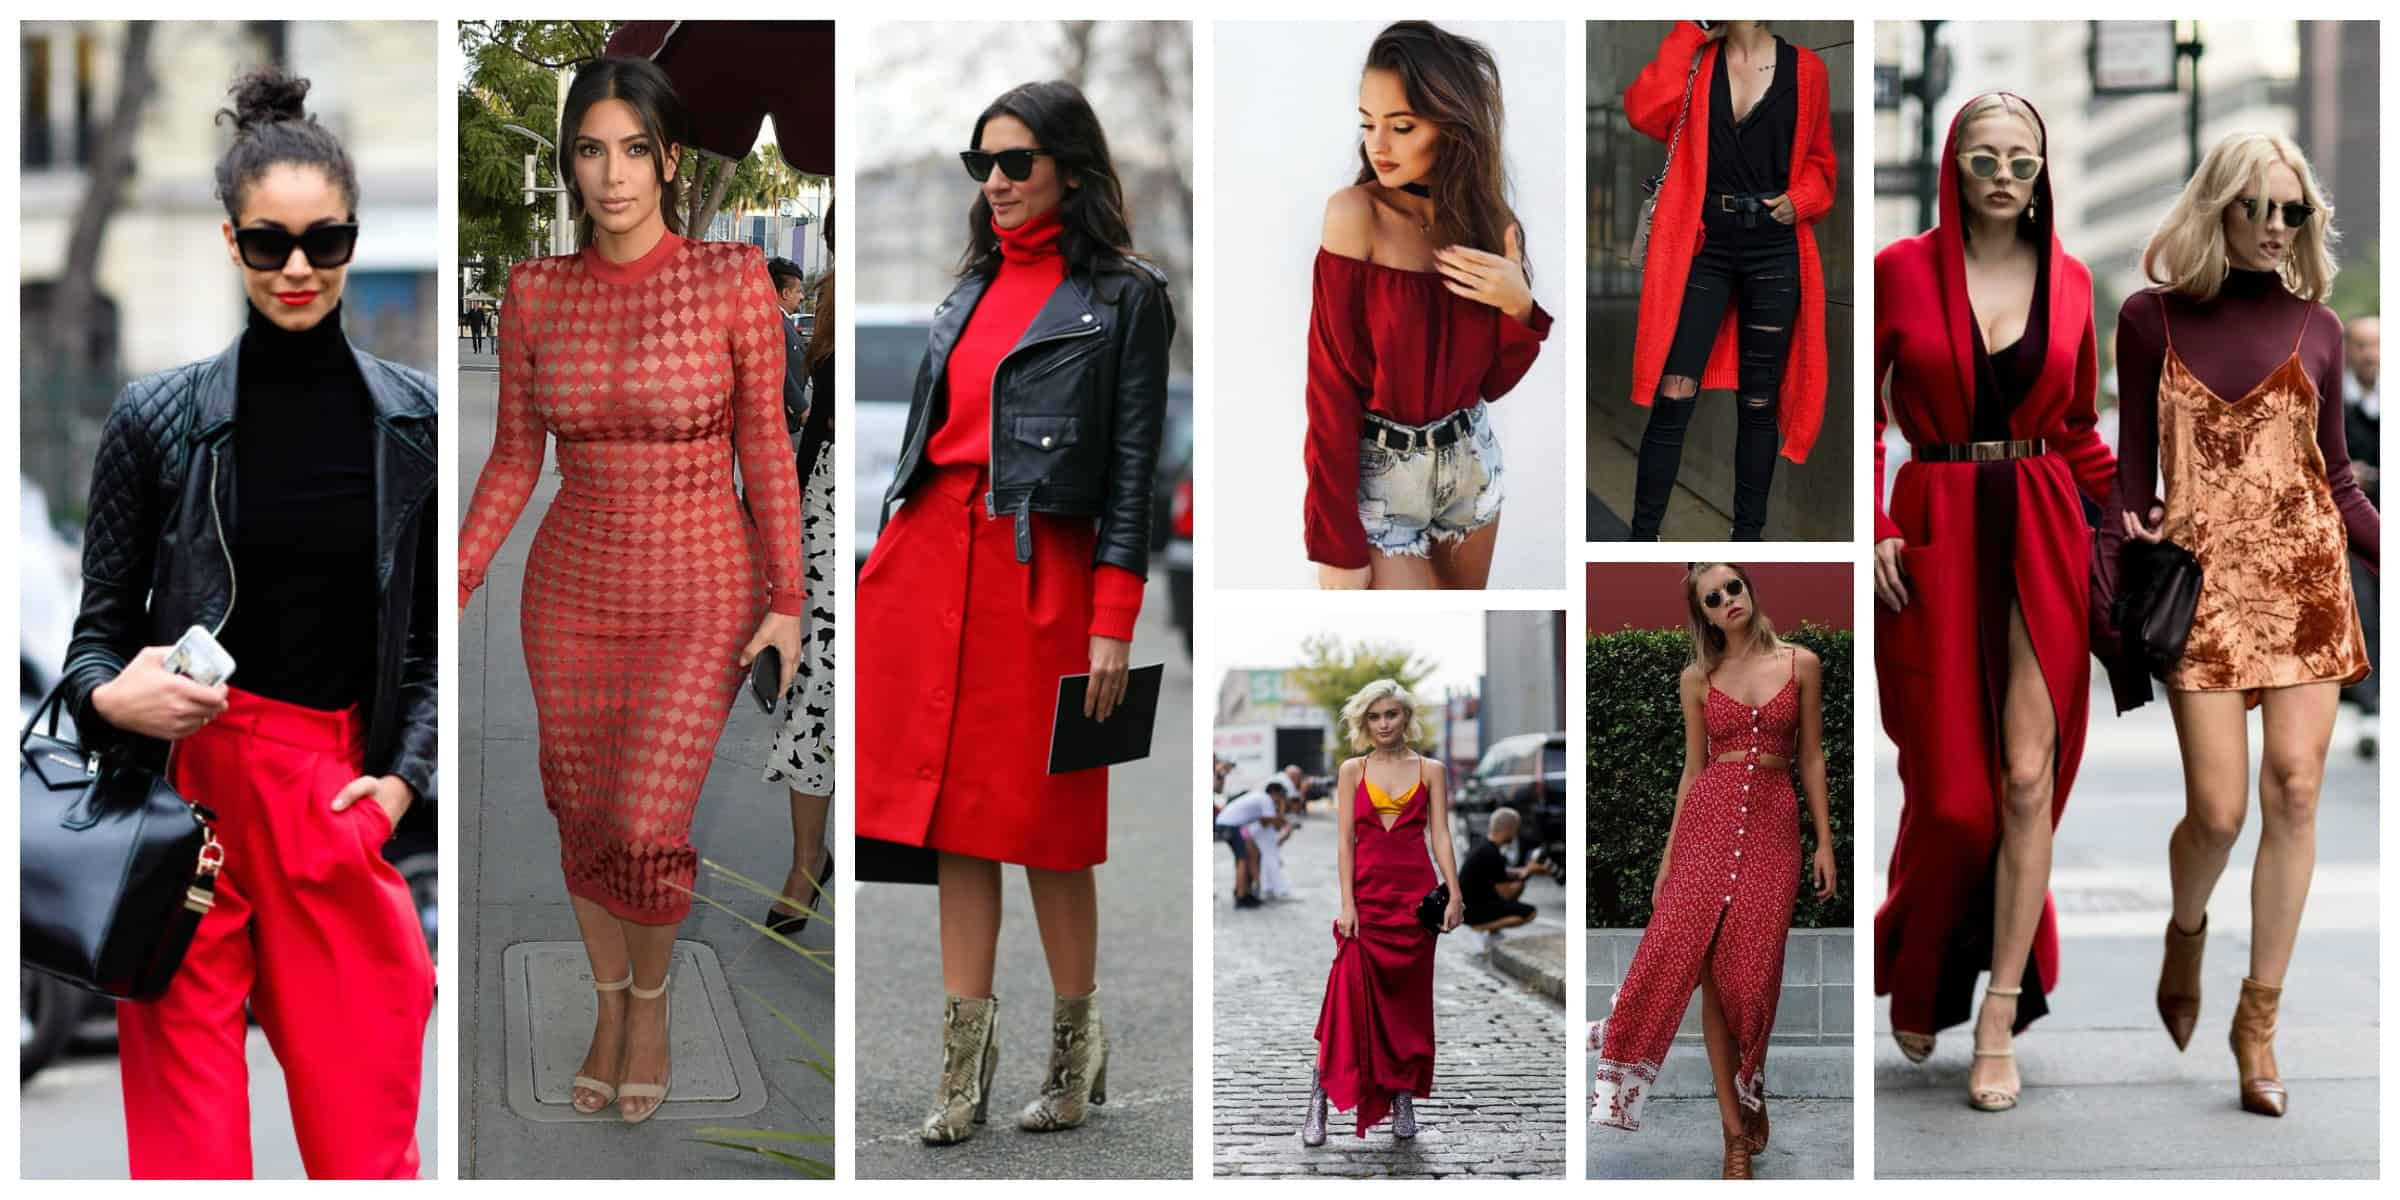 Top Fashion Trends For 2018 - Biggest 2018 Fashion Trends 53